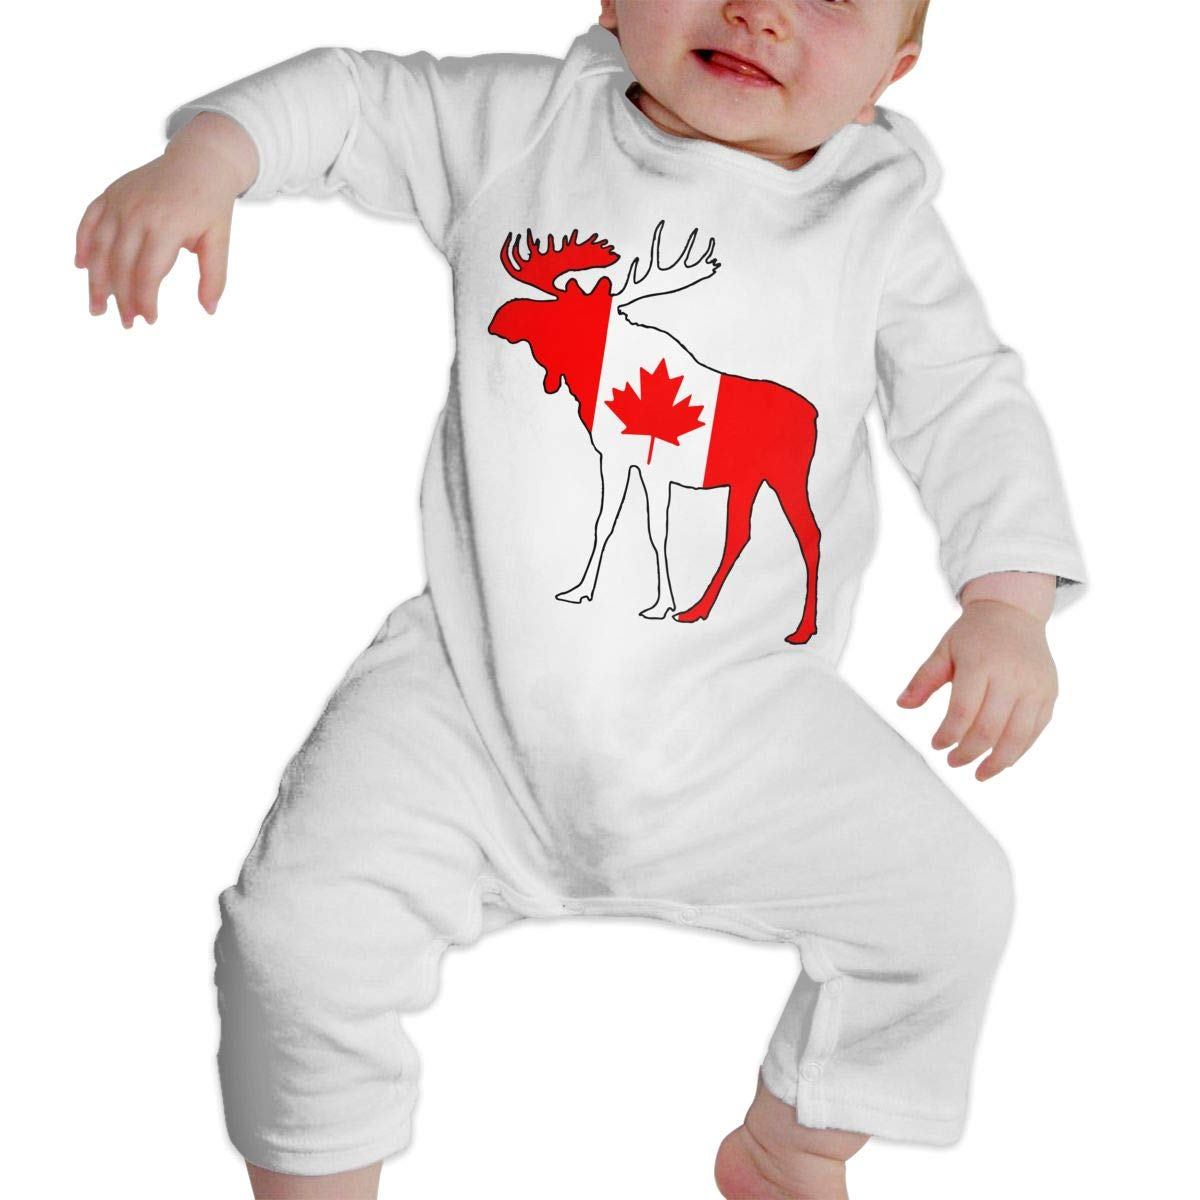 A1BY-5US Infant Babys Cotton Long Sleeve Canada Flag Moose Baby Clothes One-Piece Romper Clothes